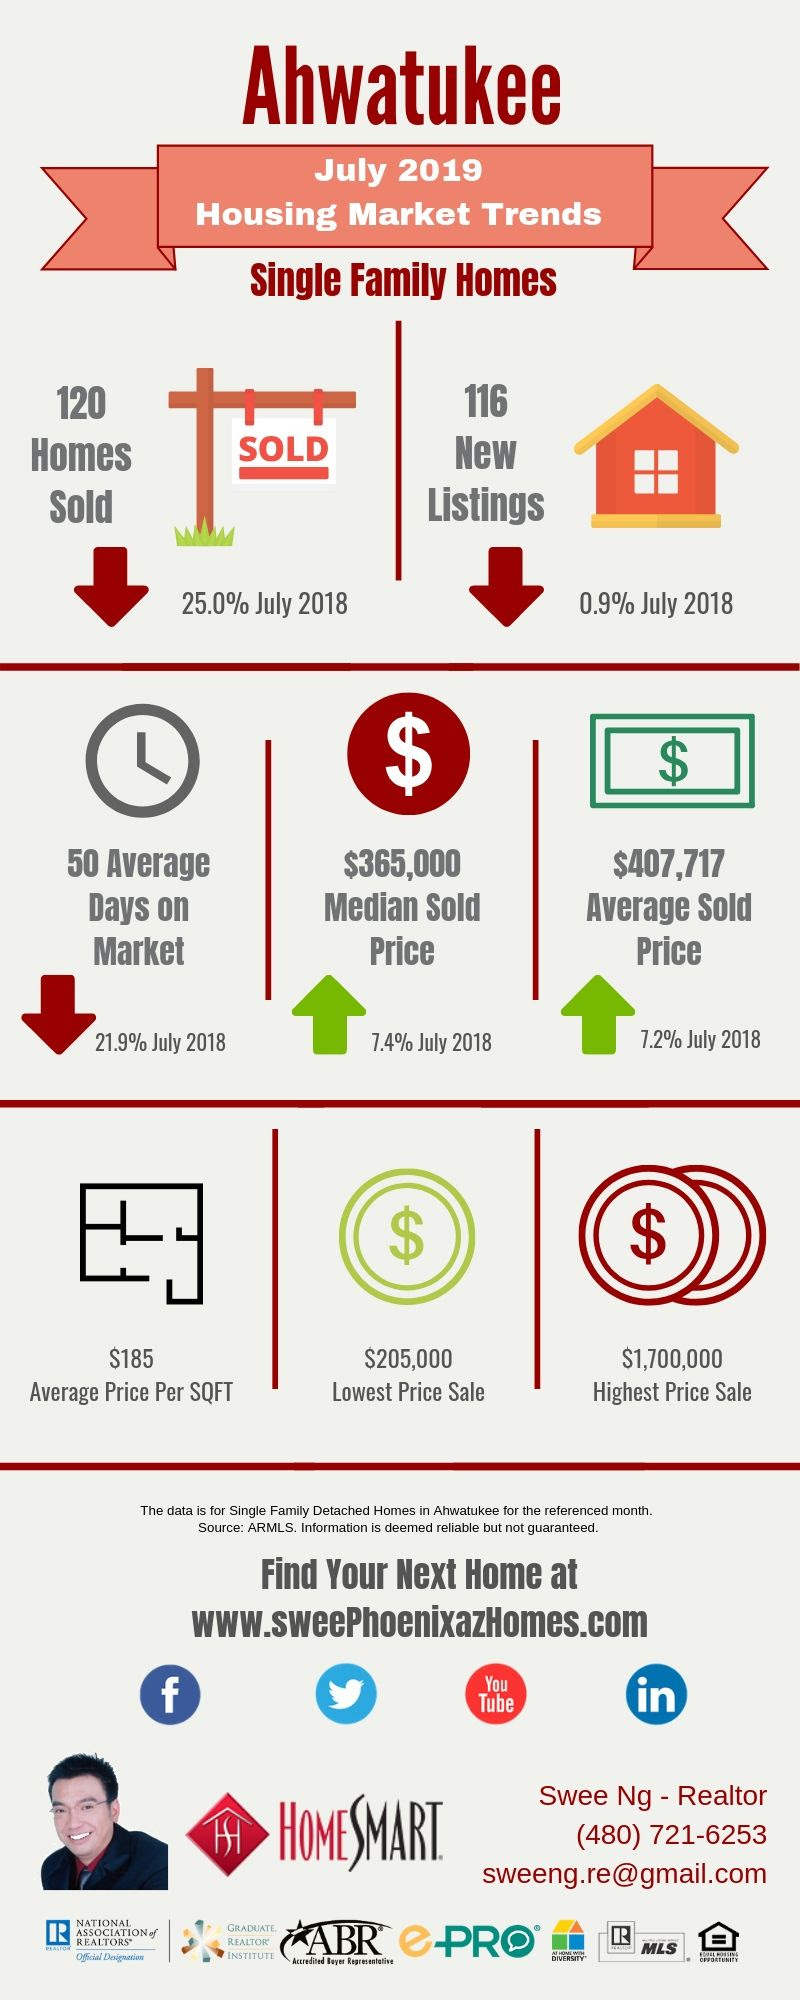 July 2019 Ahwatukee Housing Market Update, House Value, Real Estate and Statistic by Swee Ng